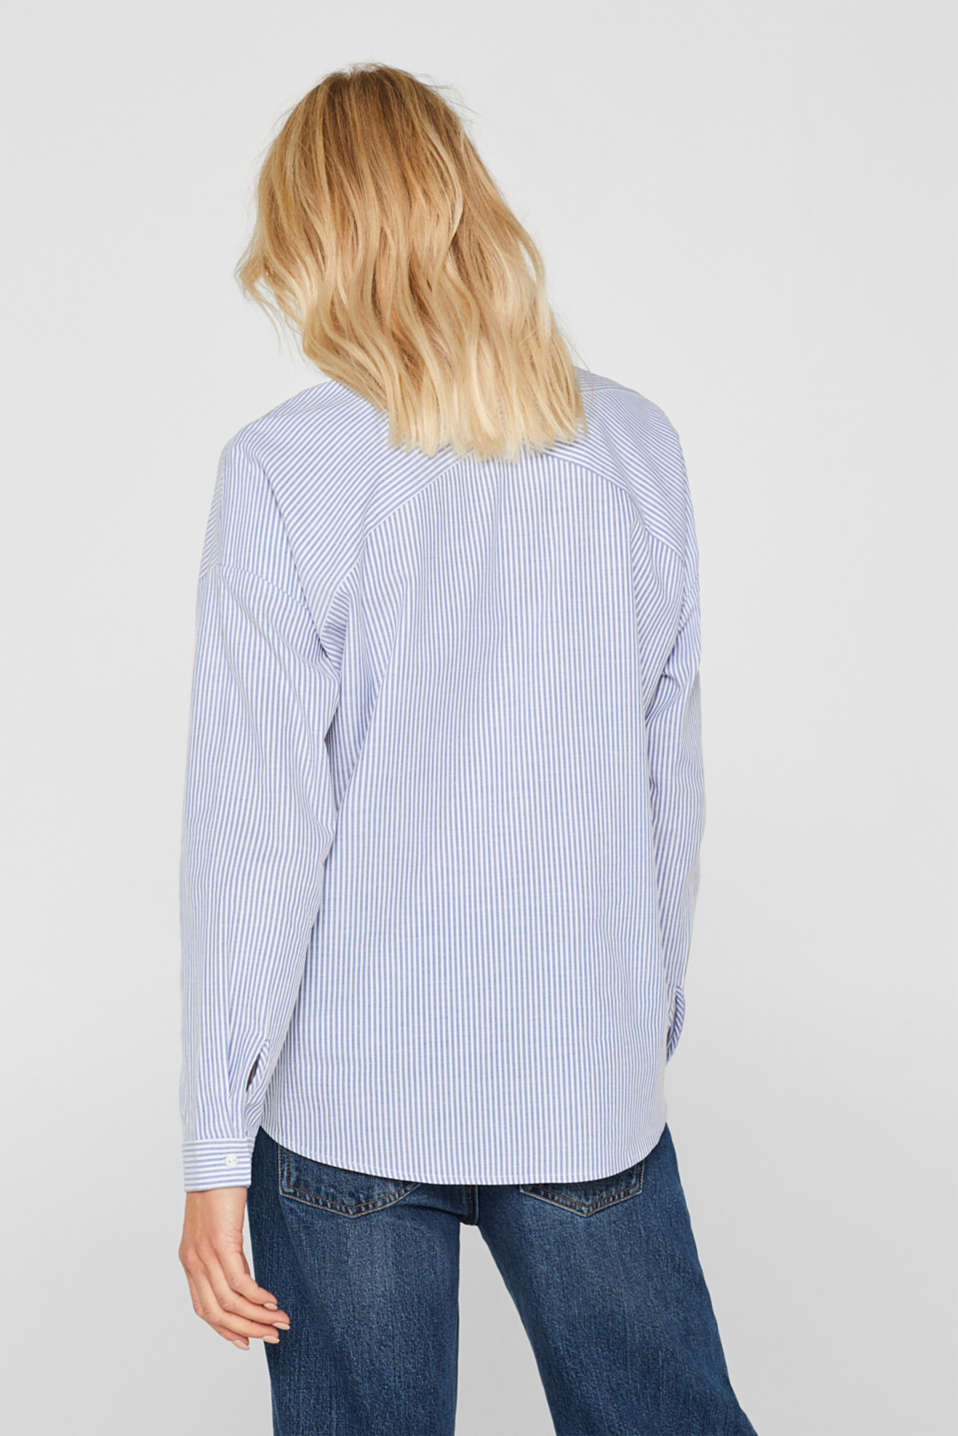 Striped shirt made of 100% cotton, LIGHT BLUE, detail image number 3